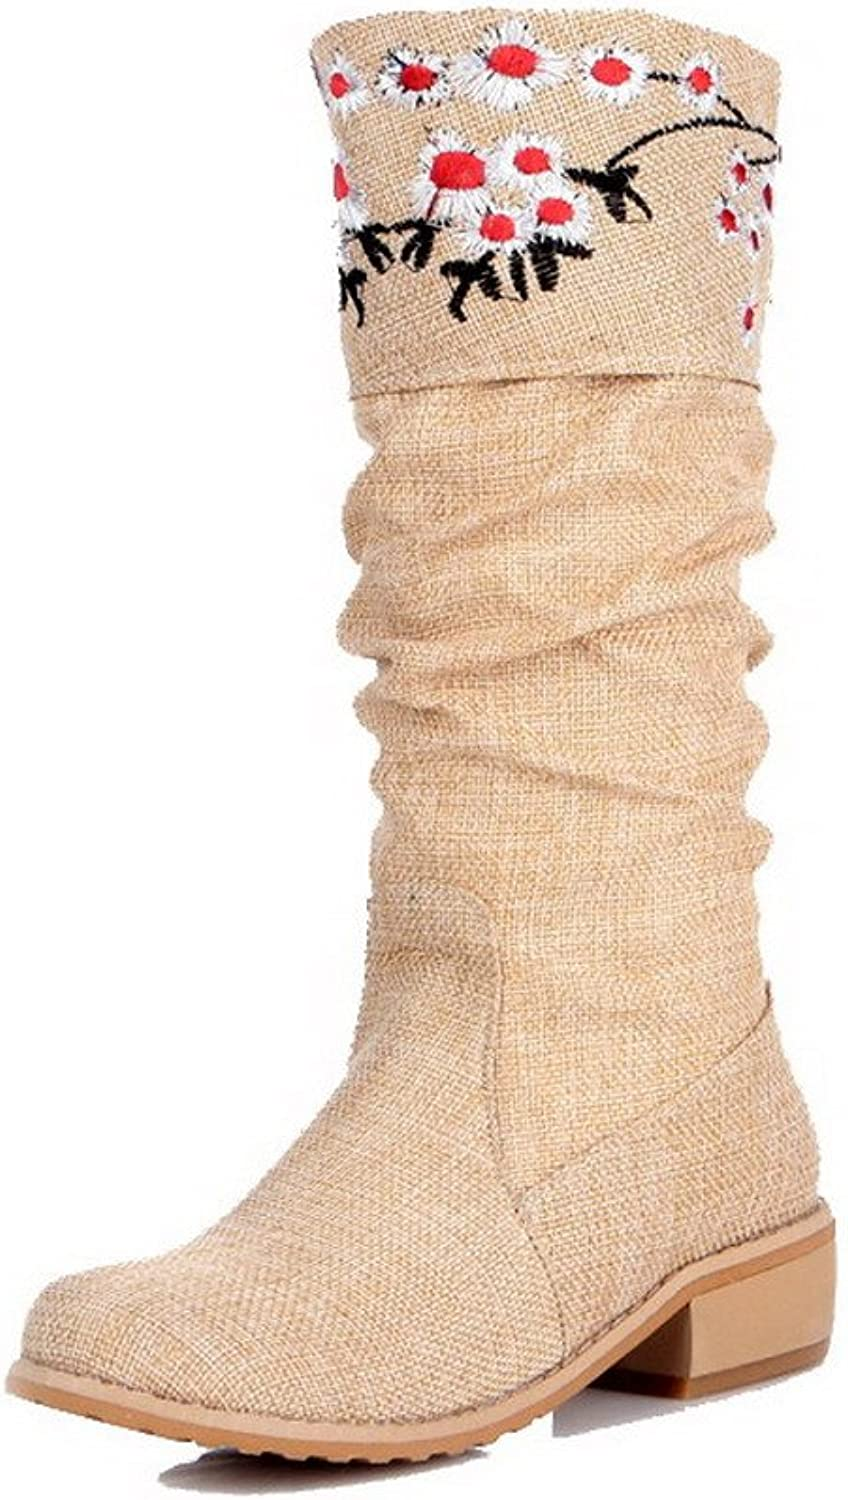 AmoonyFashion Women's Pull-on Low-Heels Blend Materials Embroidered Mid-top Boots